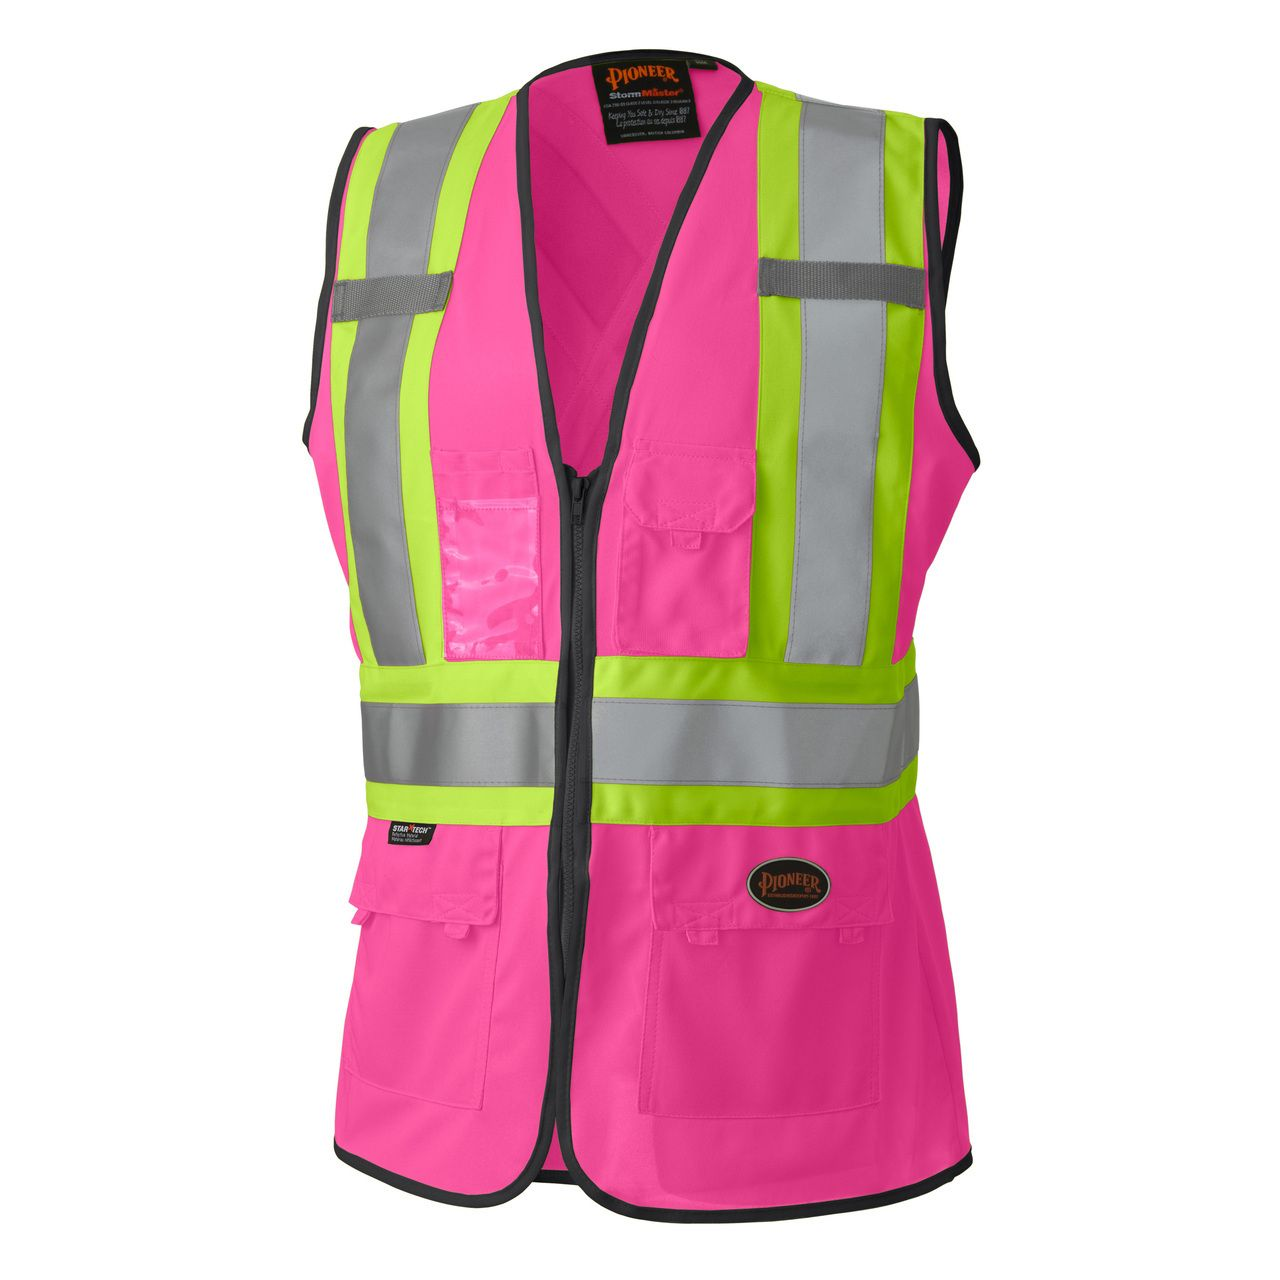 Safety Clothing Careful High Visibility Mesh Fabric Safety Vest Reflective Mesh Vest Breathable Free Shipping Security & Protection